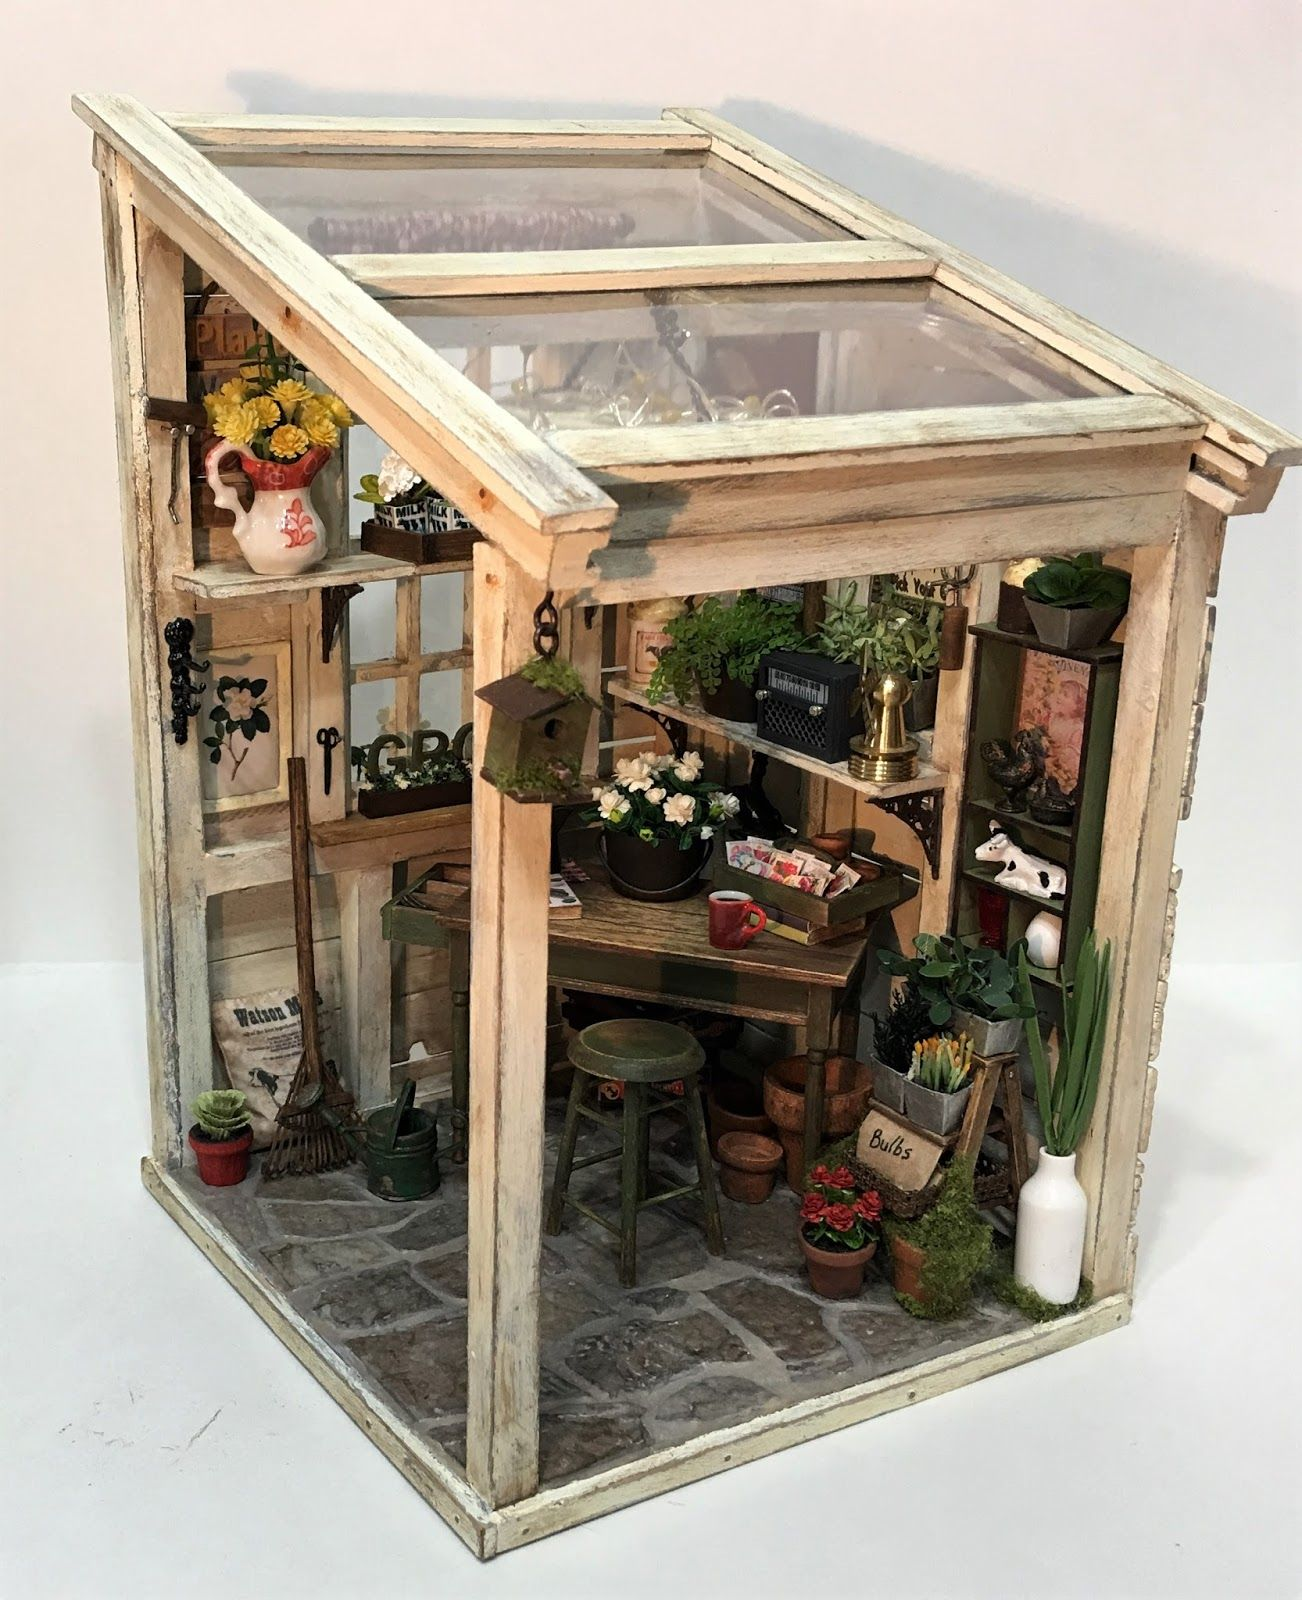 Miniature Mini Greenhouse Room Box In 1 12 Scale Room Box Miniatures Miniature Rooms Miniature Houses